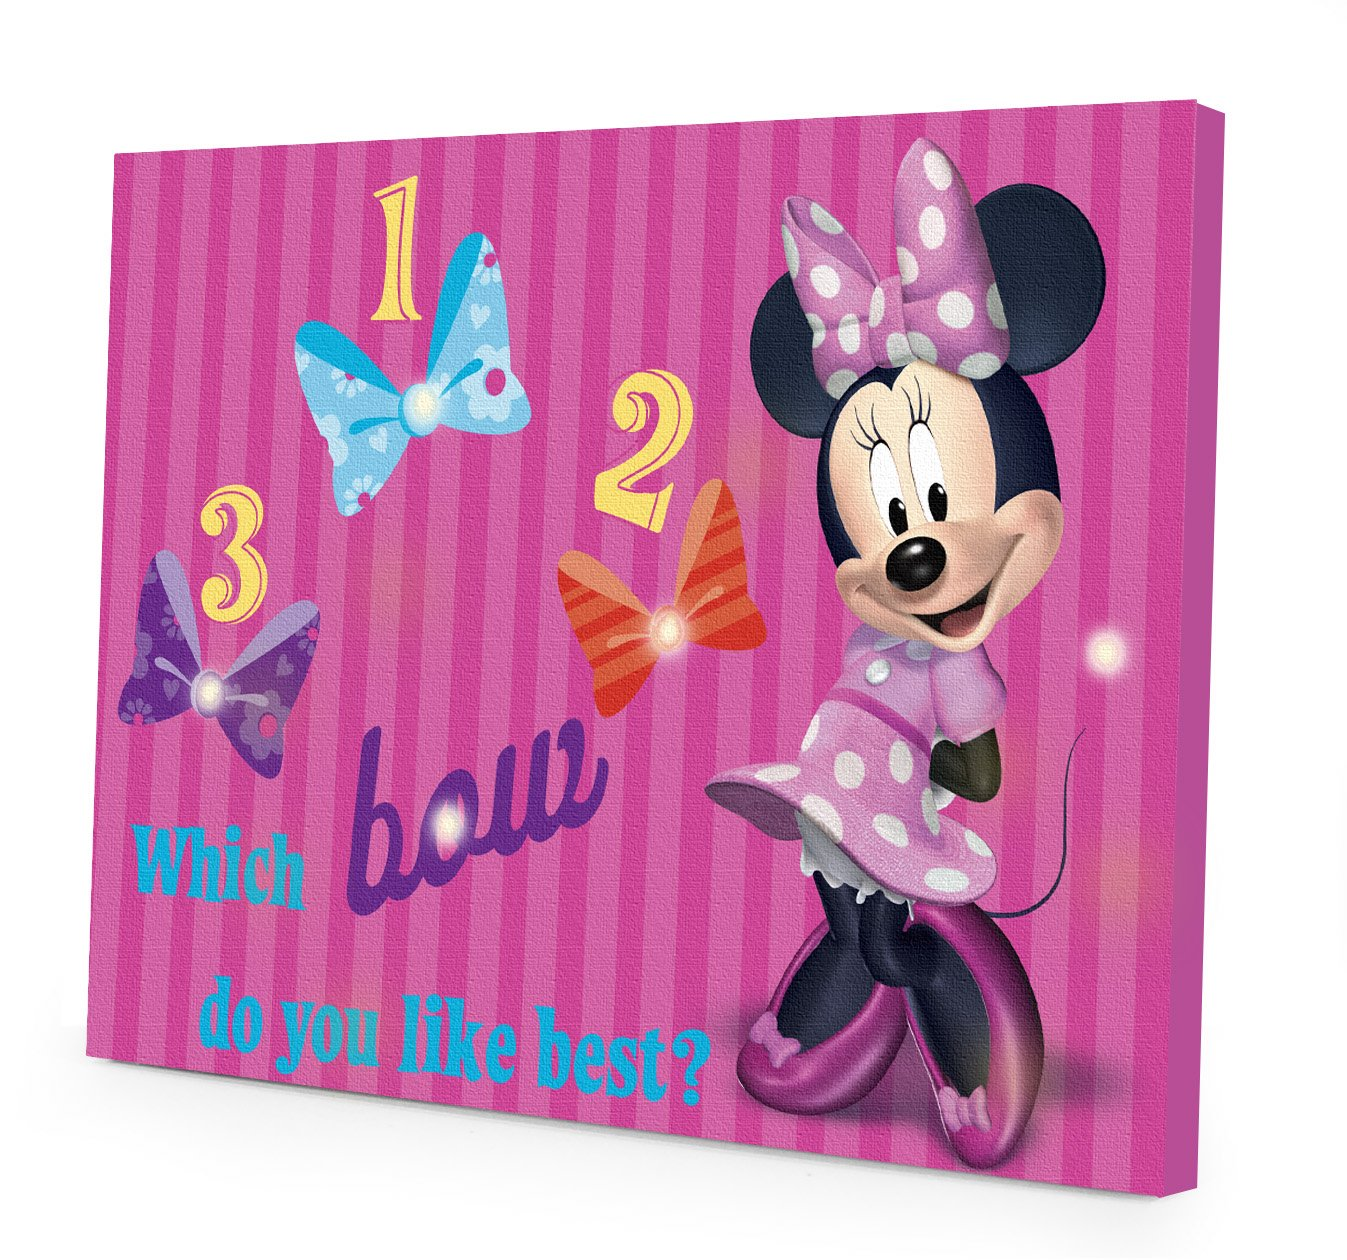 Amazon disney minnie mouse led canvas wall art 1575 inch x amazon disney minnie mouse led canvas wall art 1575 inch x 115 inch toys games amipublicfo Choice Image